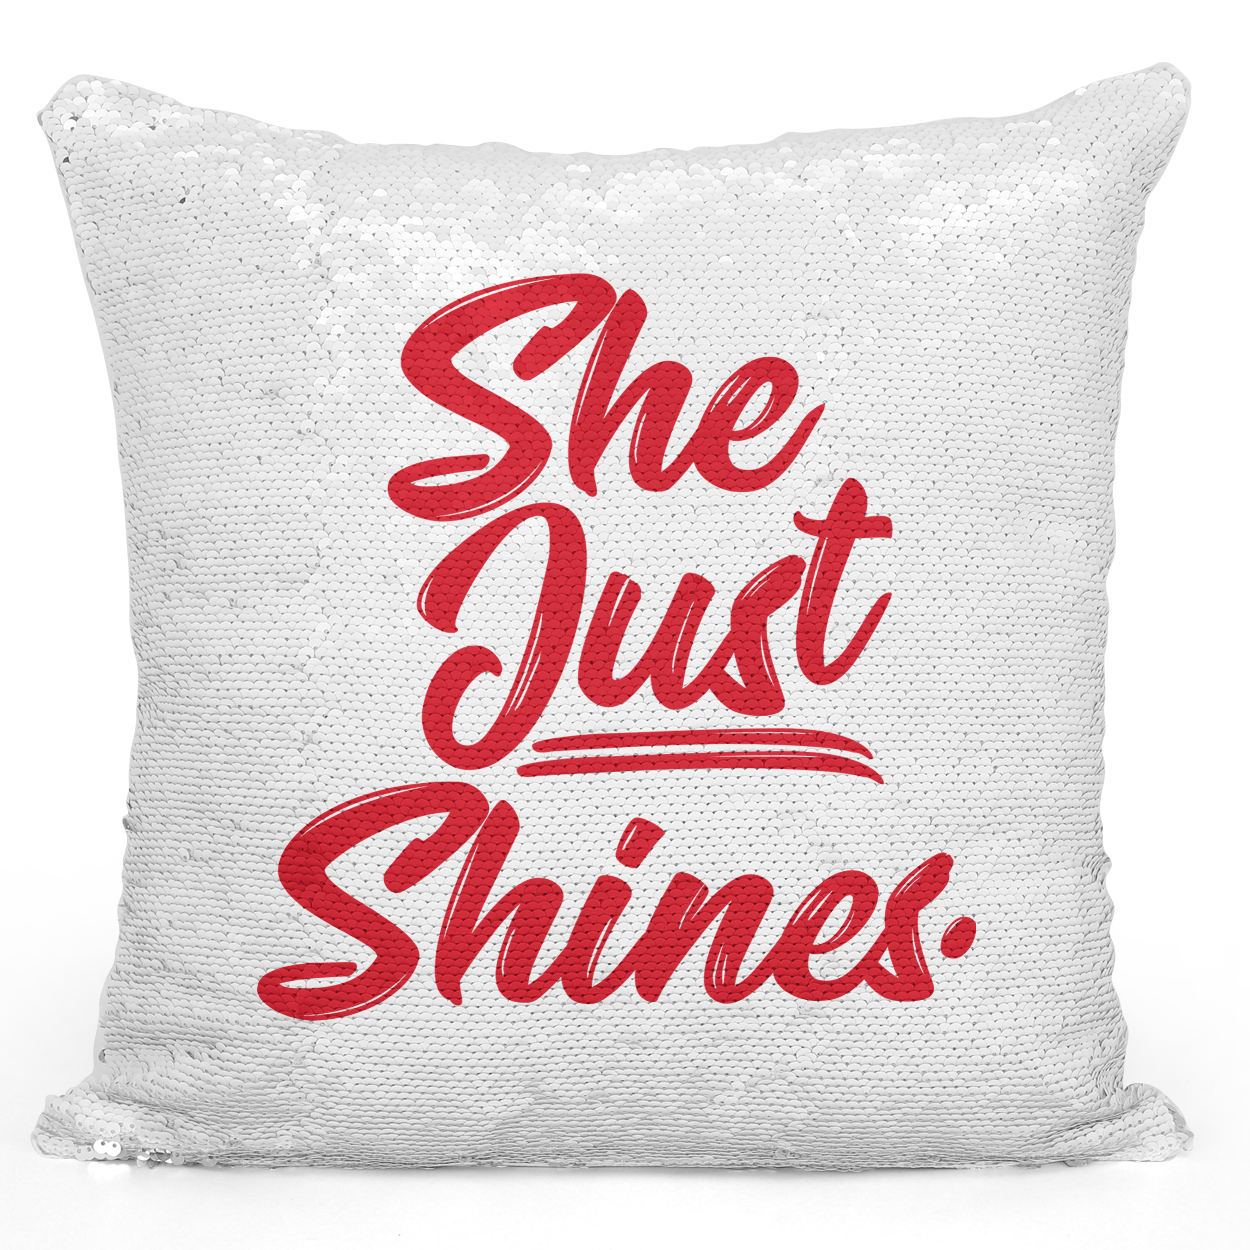 16x16 inch Sequin Throw Pillow Magic Flip Pillow She Just Shines Red Girls Females Pillow Loud Universe